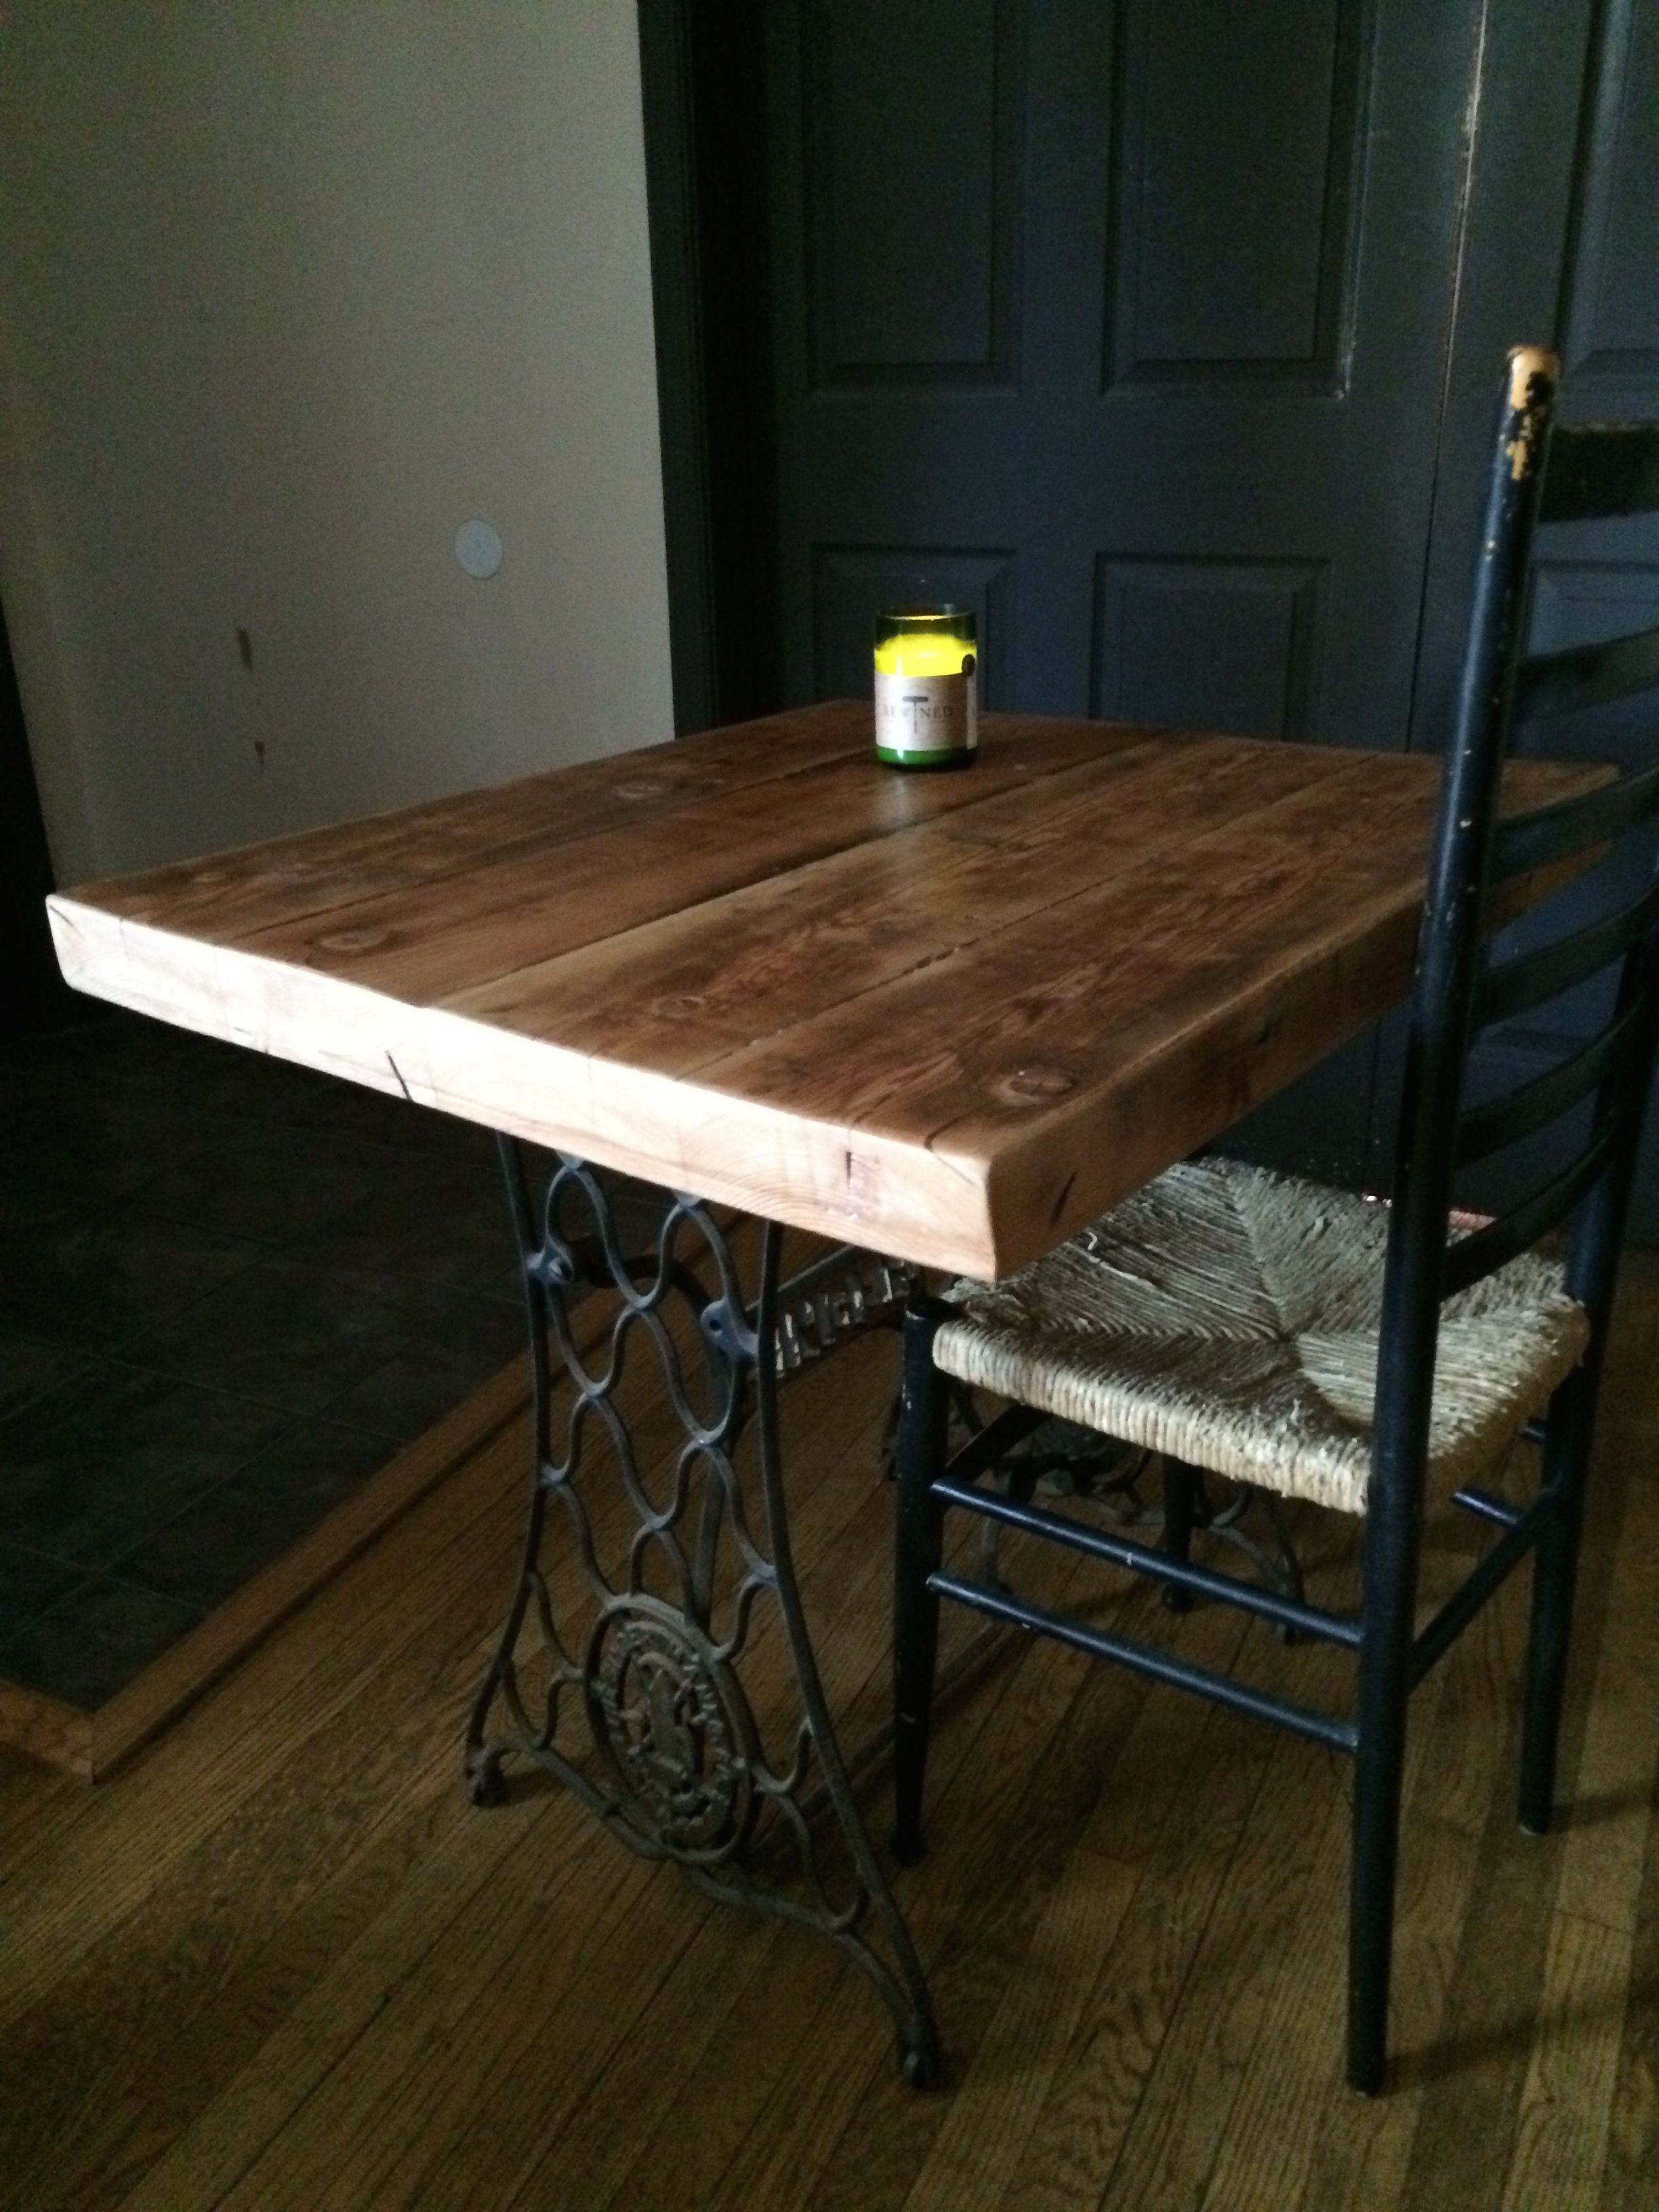 Yellow Pine Reclaimed Floor Joist Top From Wood In Baltimore City And A 1910 Singer Sewing Machine Base